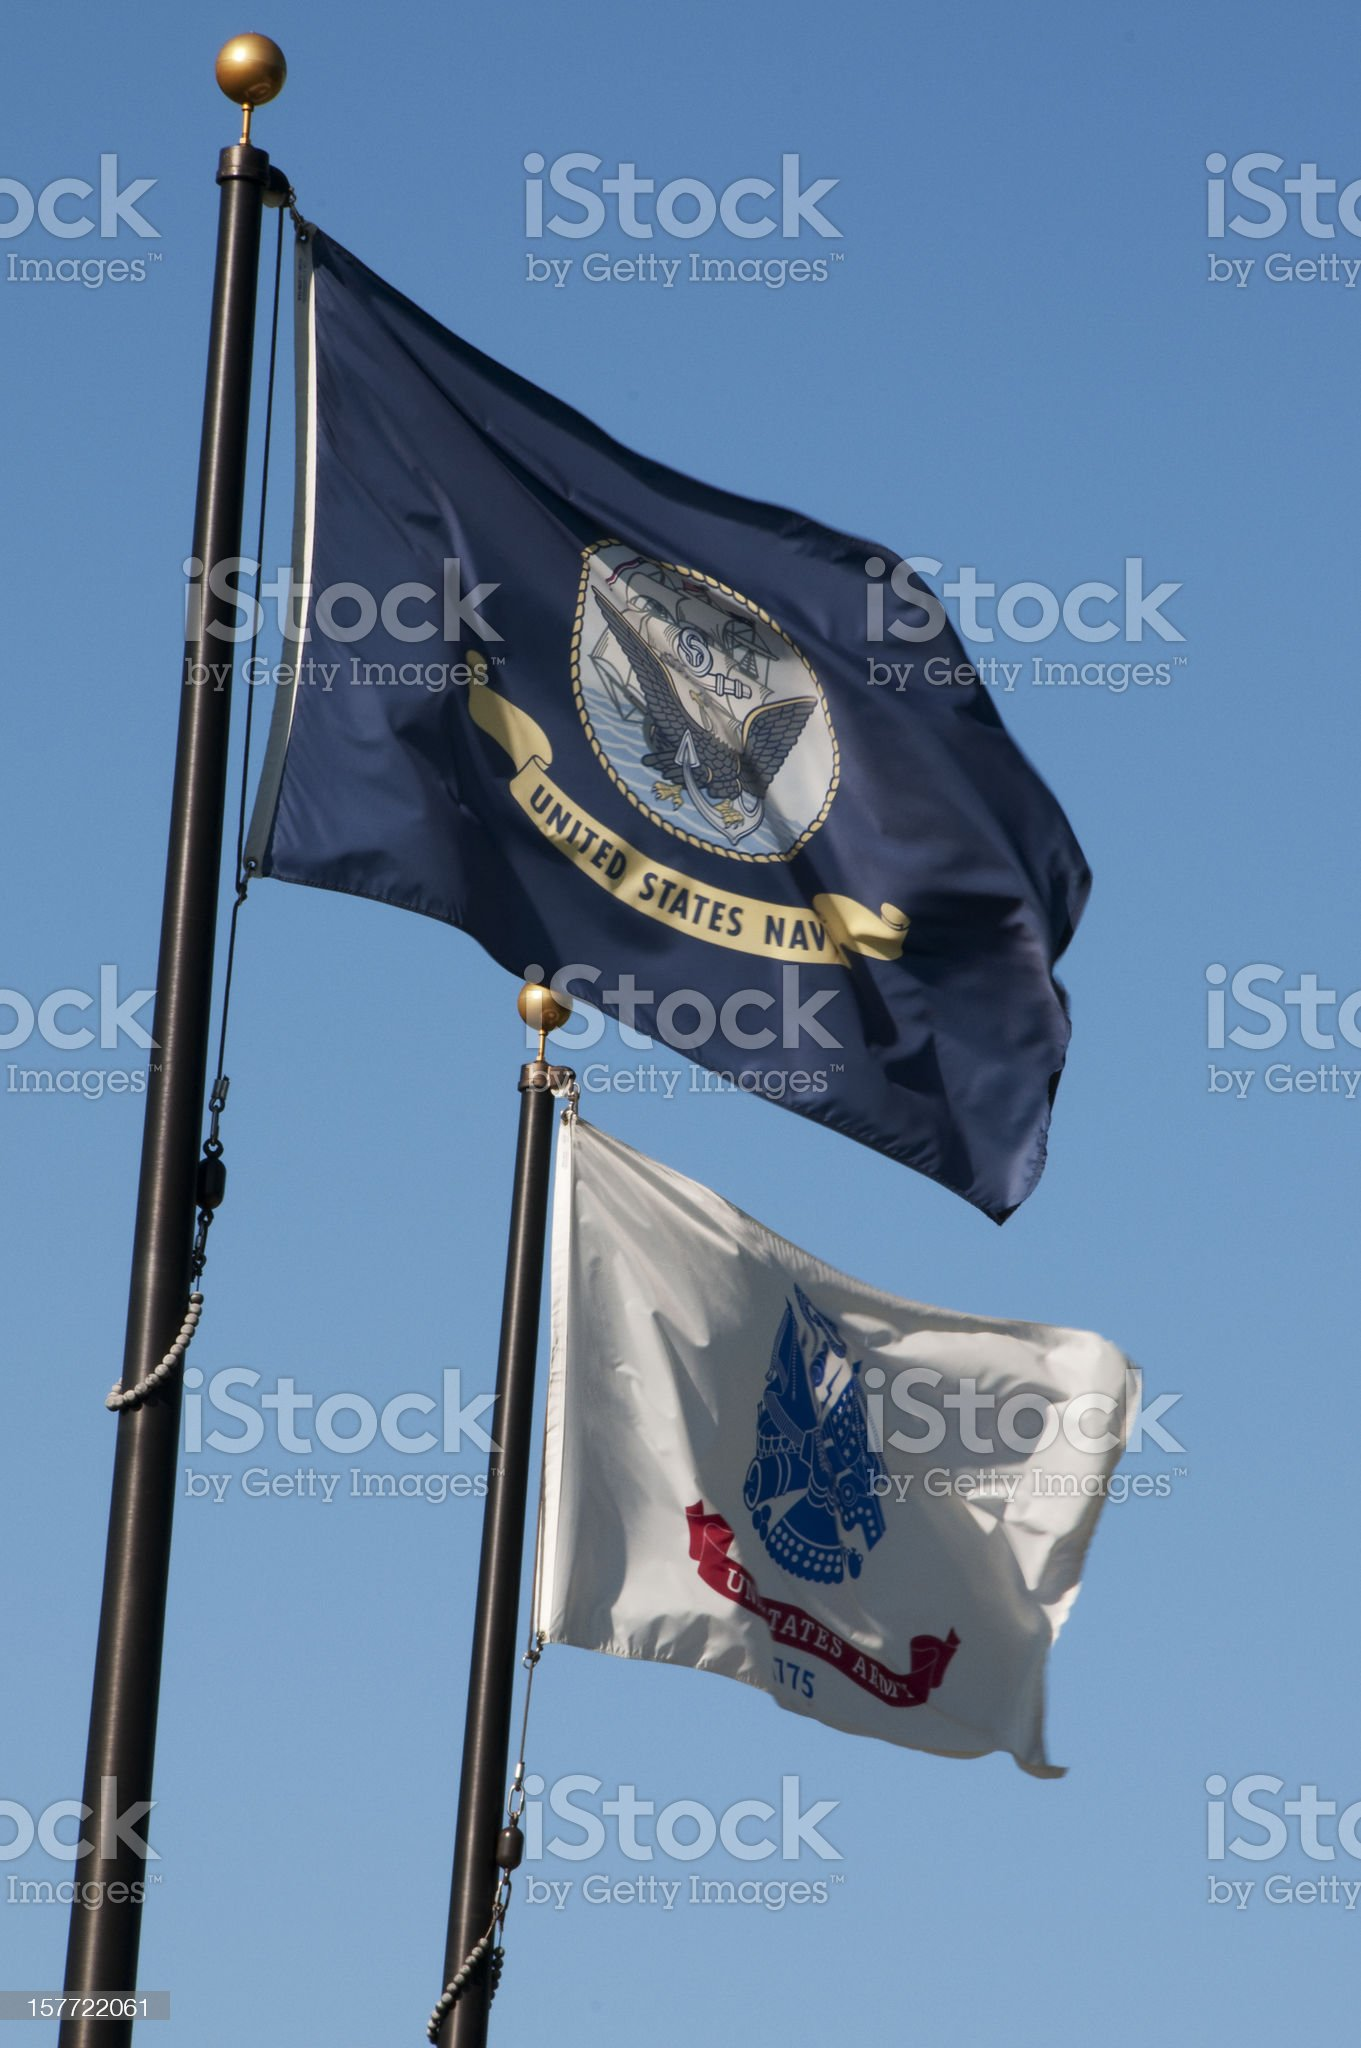 Military Flags royalty-free stock photo